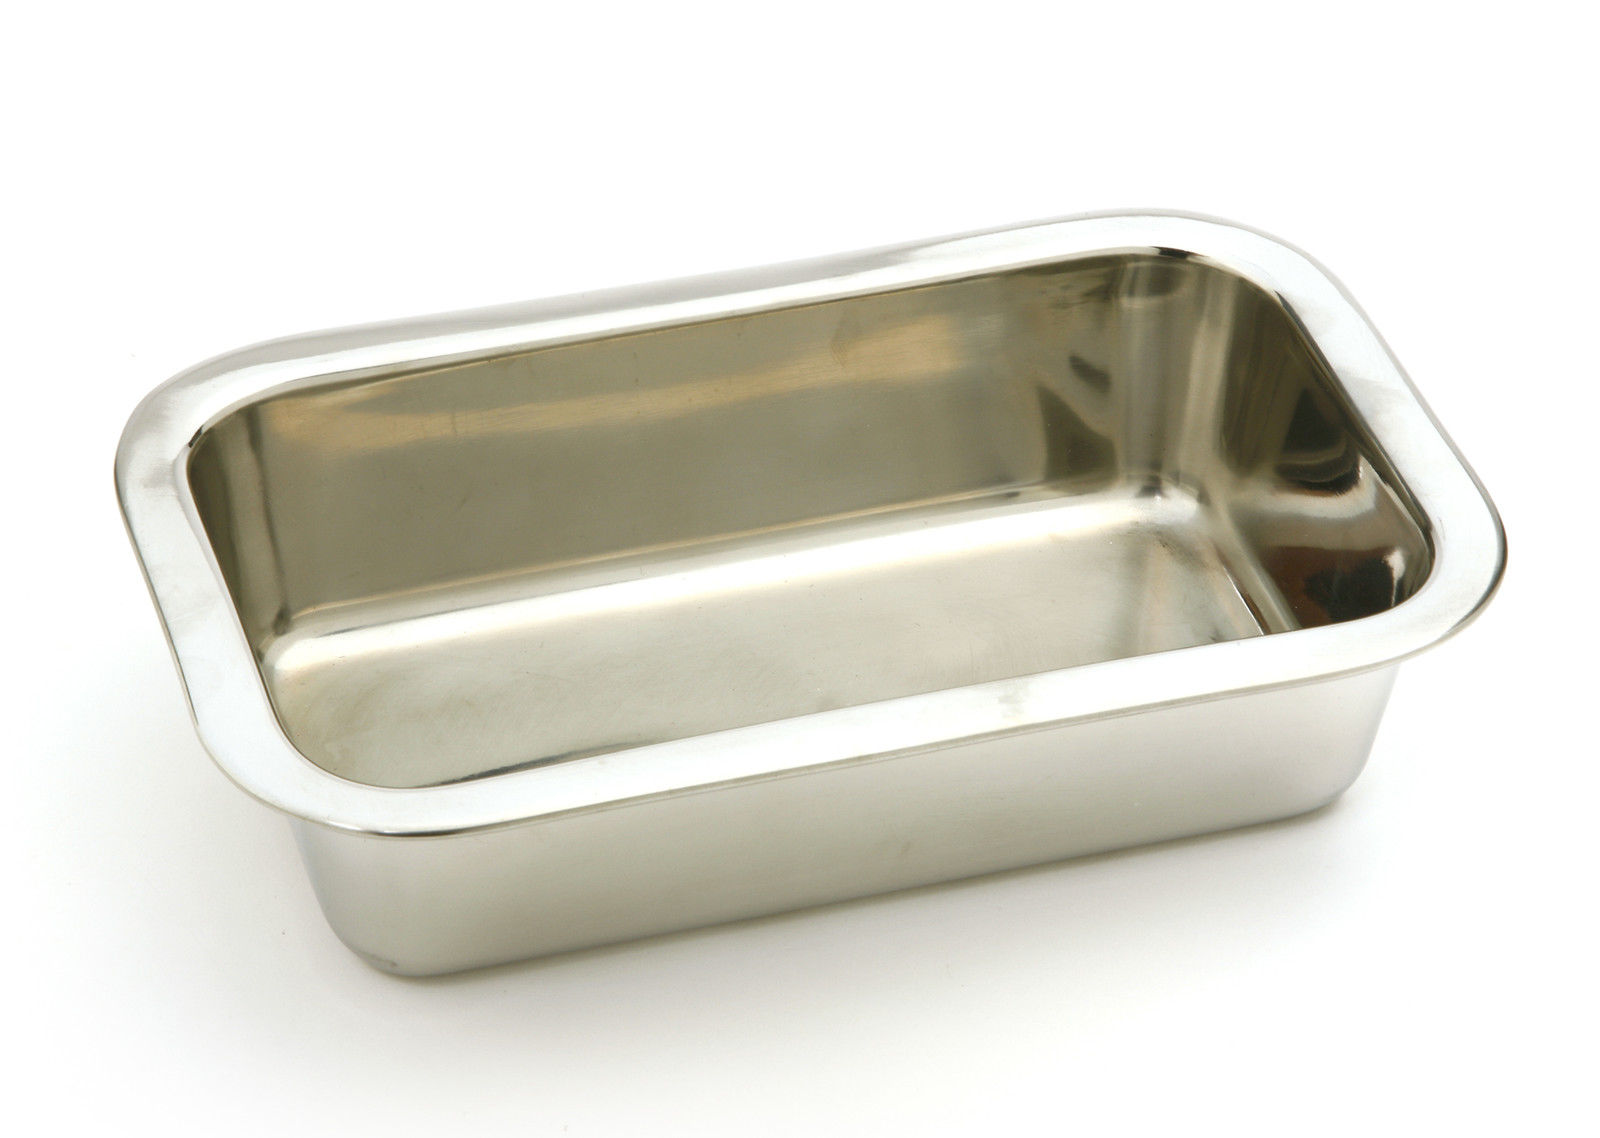 Pack of 12 Norpro Stainless Steel Loaf Pan with Mirror Finish 8 ½ x 4 ½ Inches